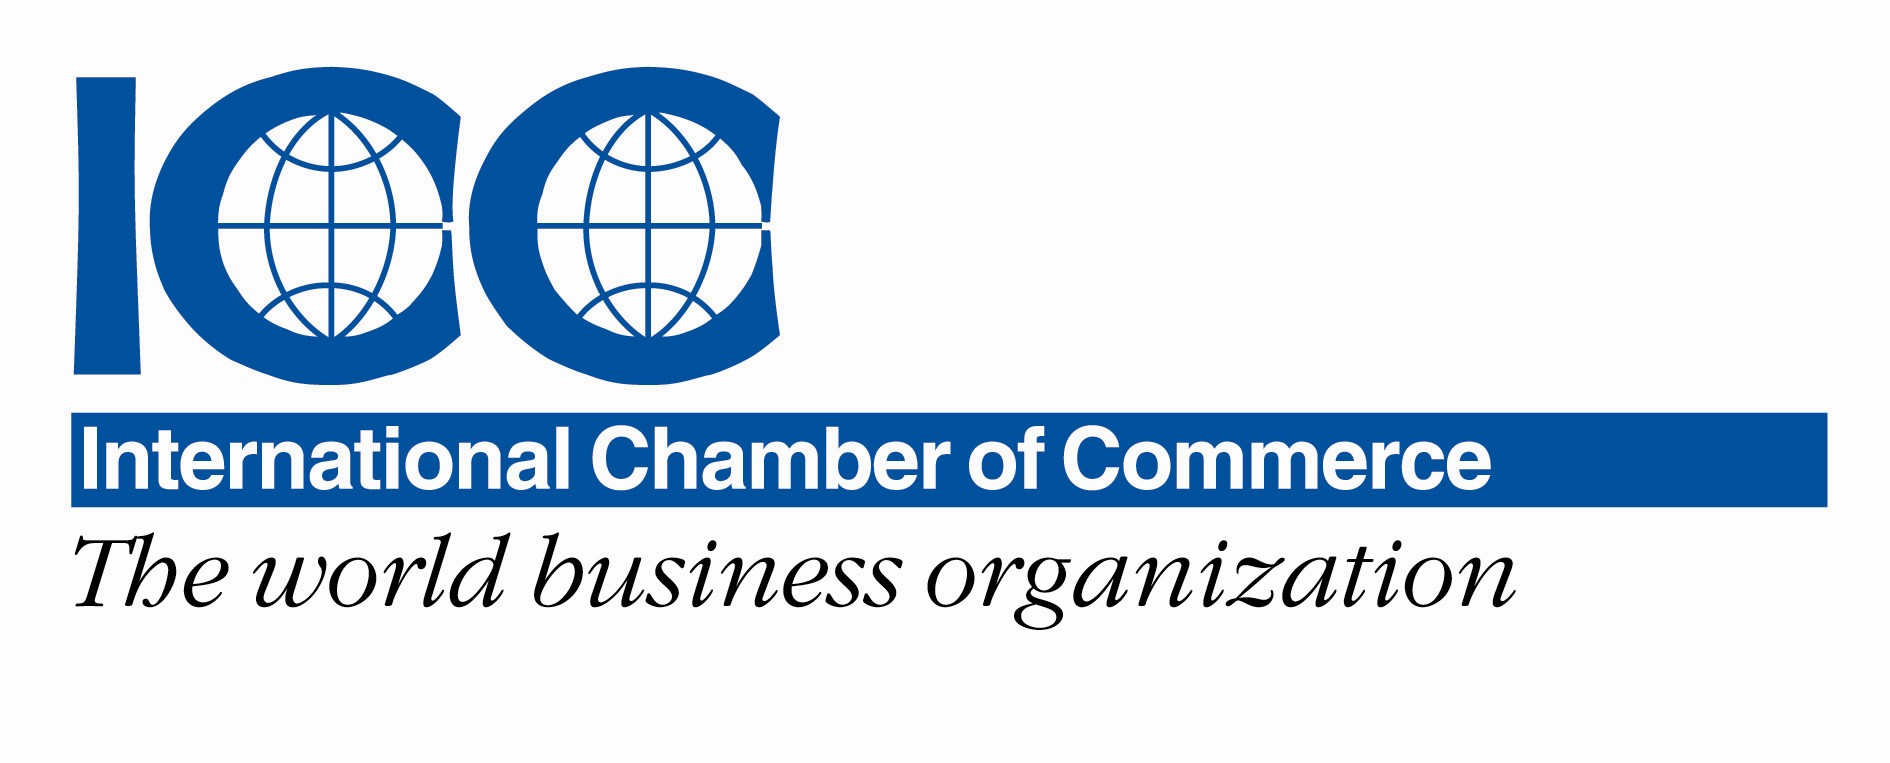 Opinions on international chamber of commerce for Chambre commerce internationale